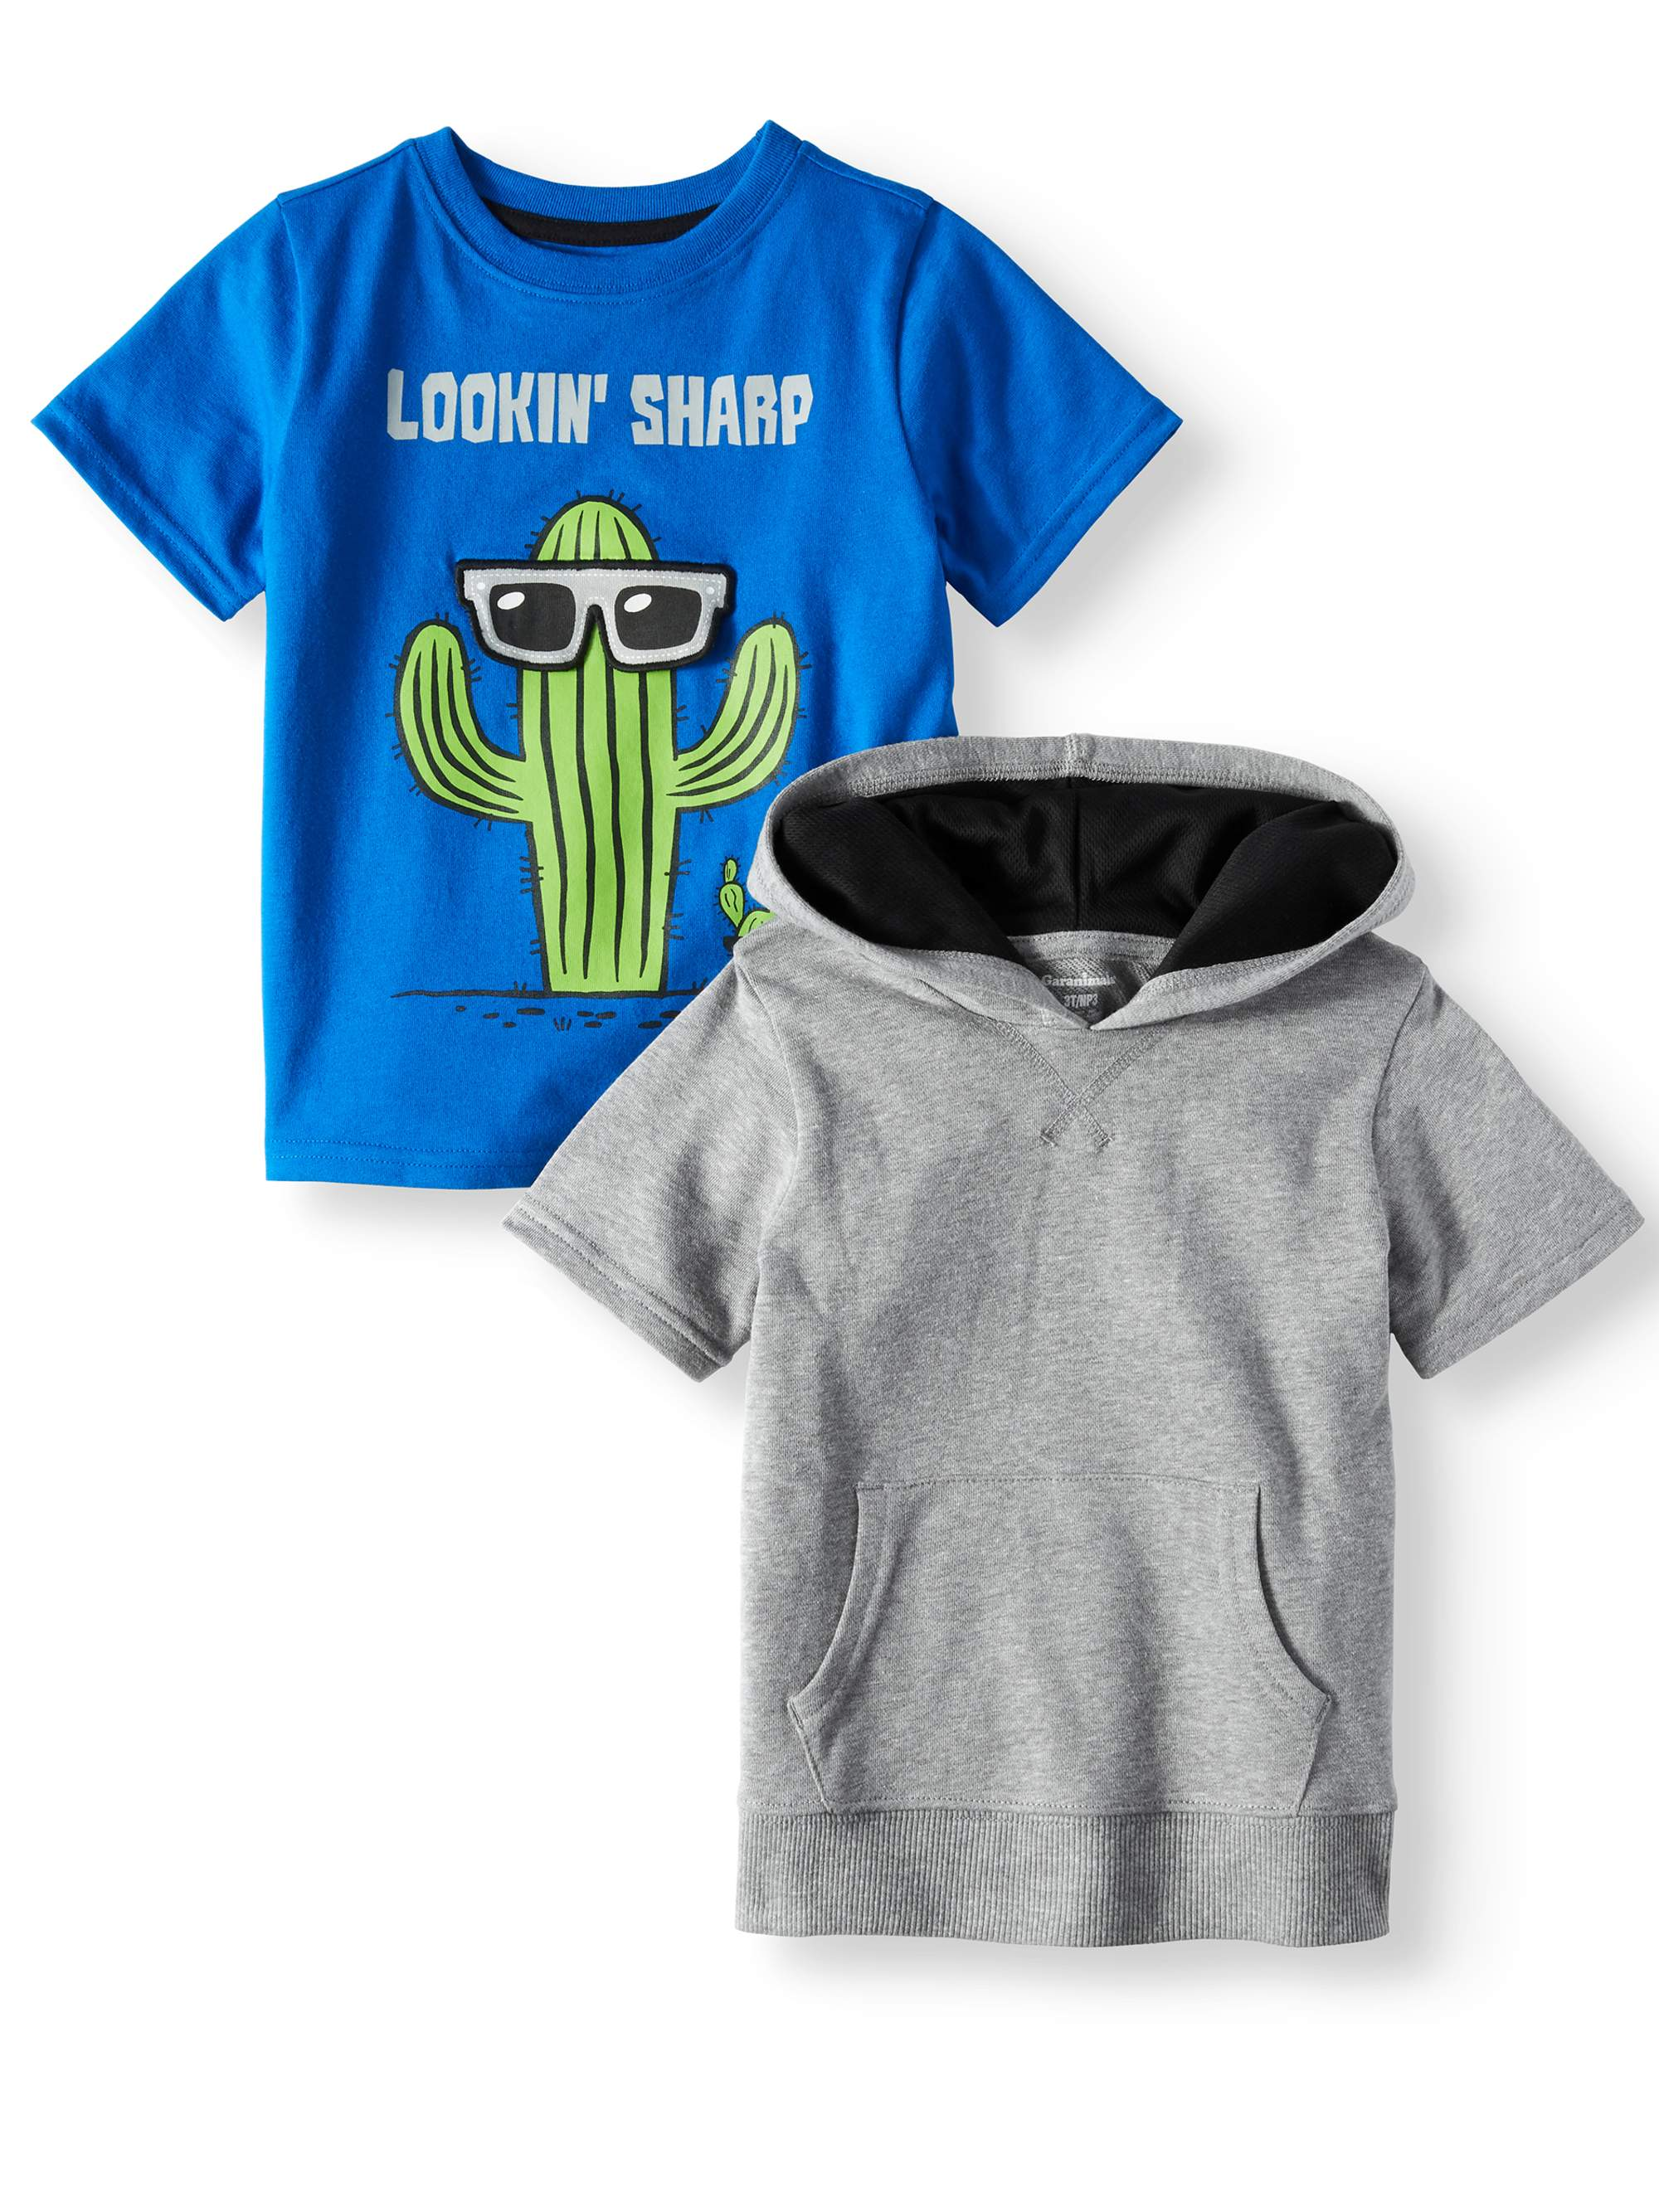 Toddler Boys' Hoodie and Graphic T-Shirt, 2-Piece Multi-Pack